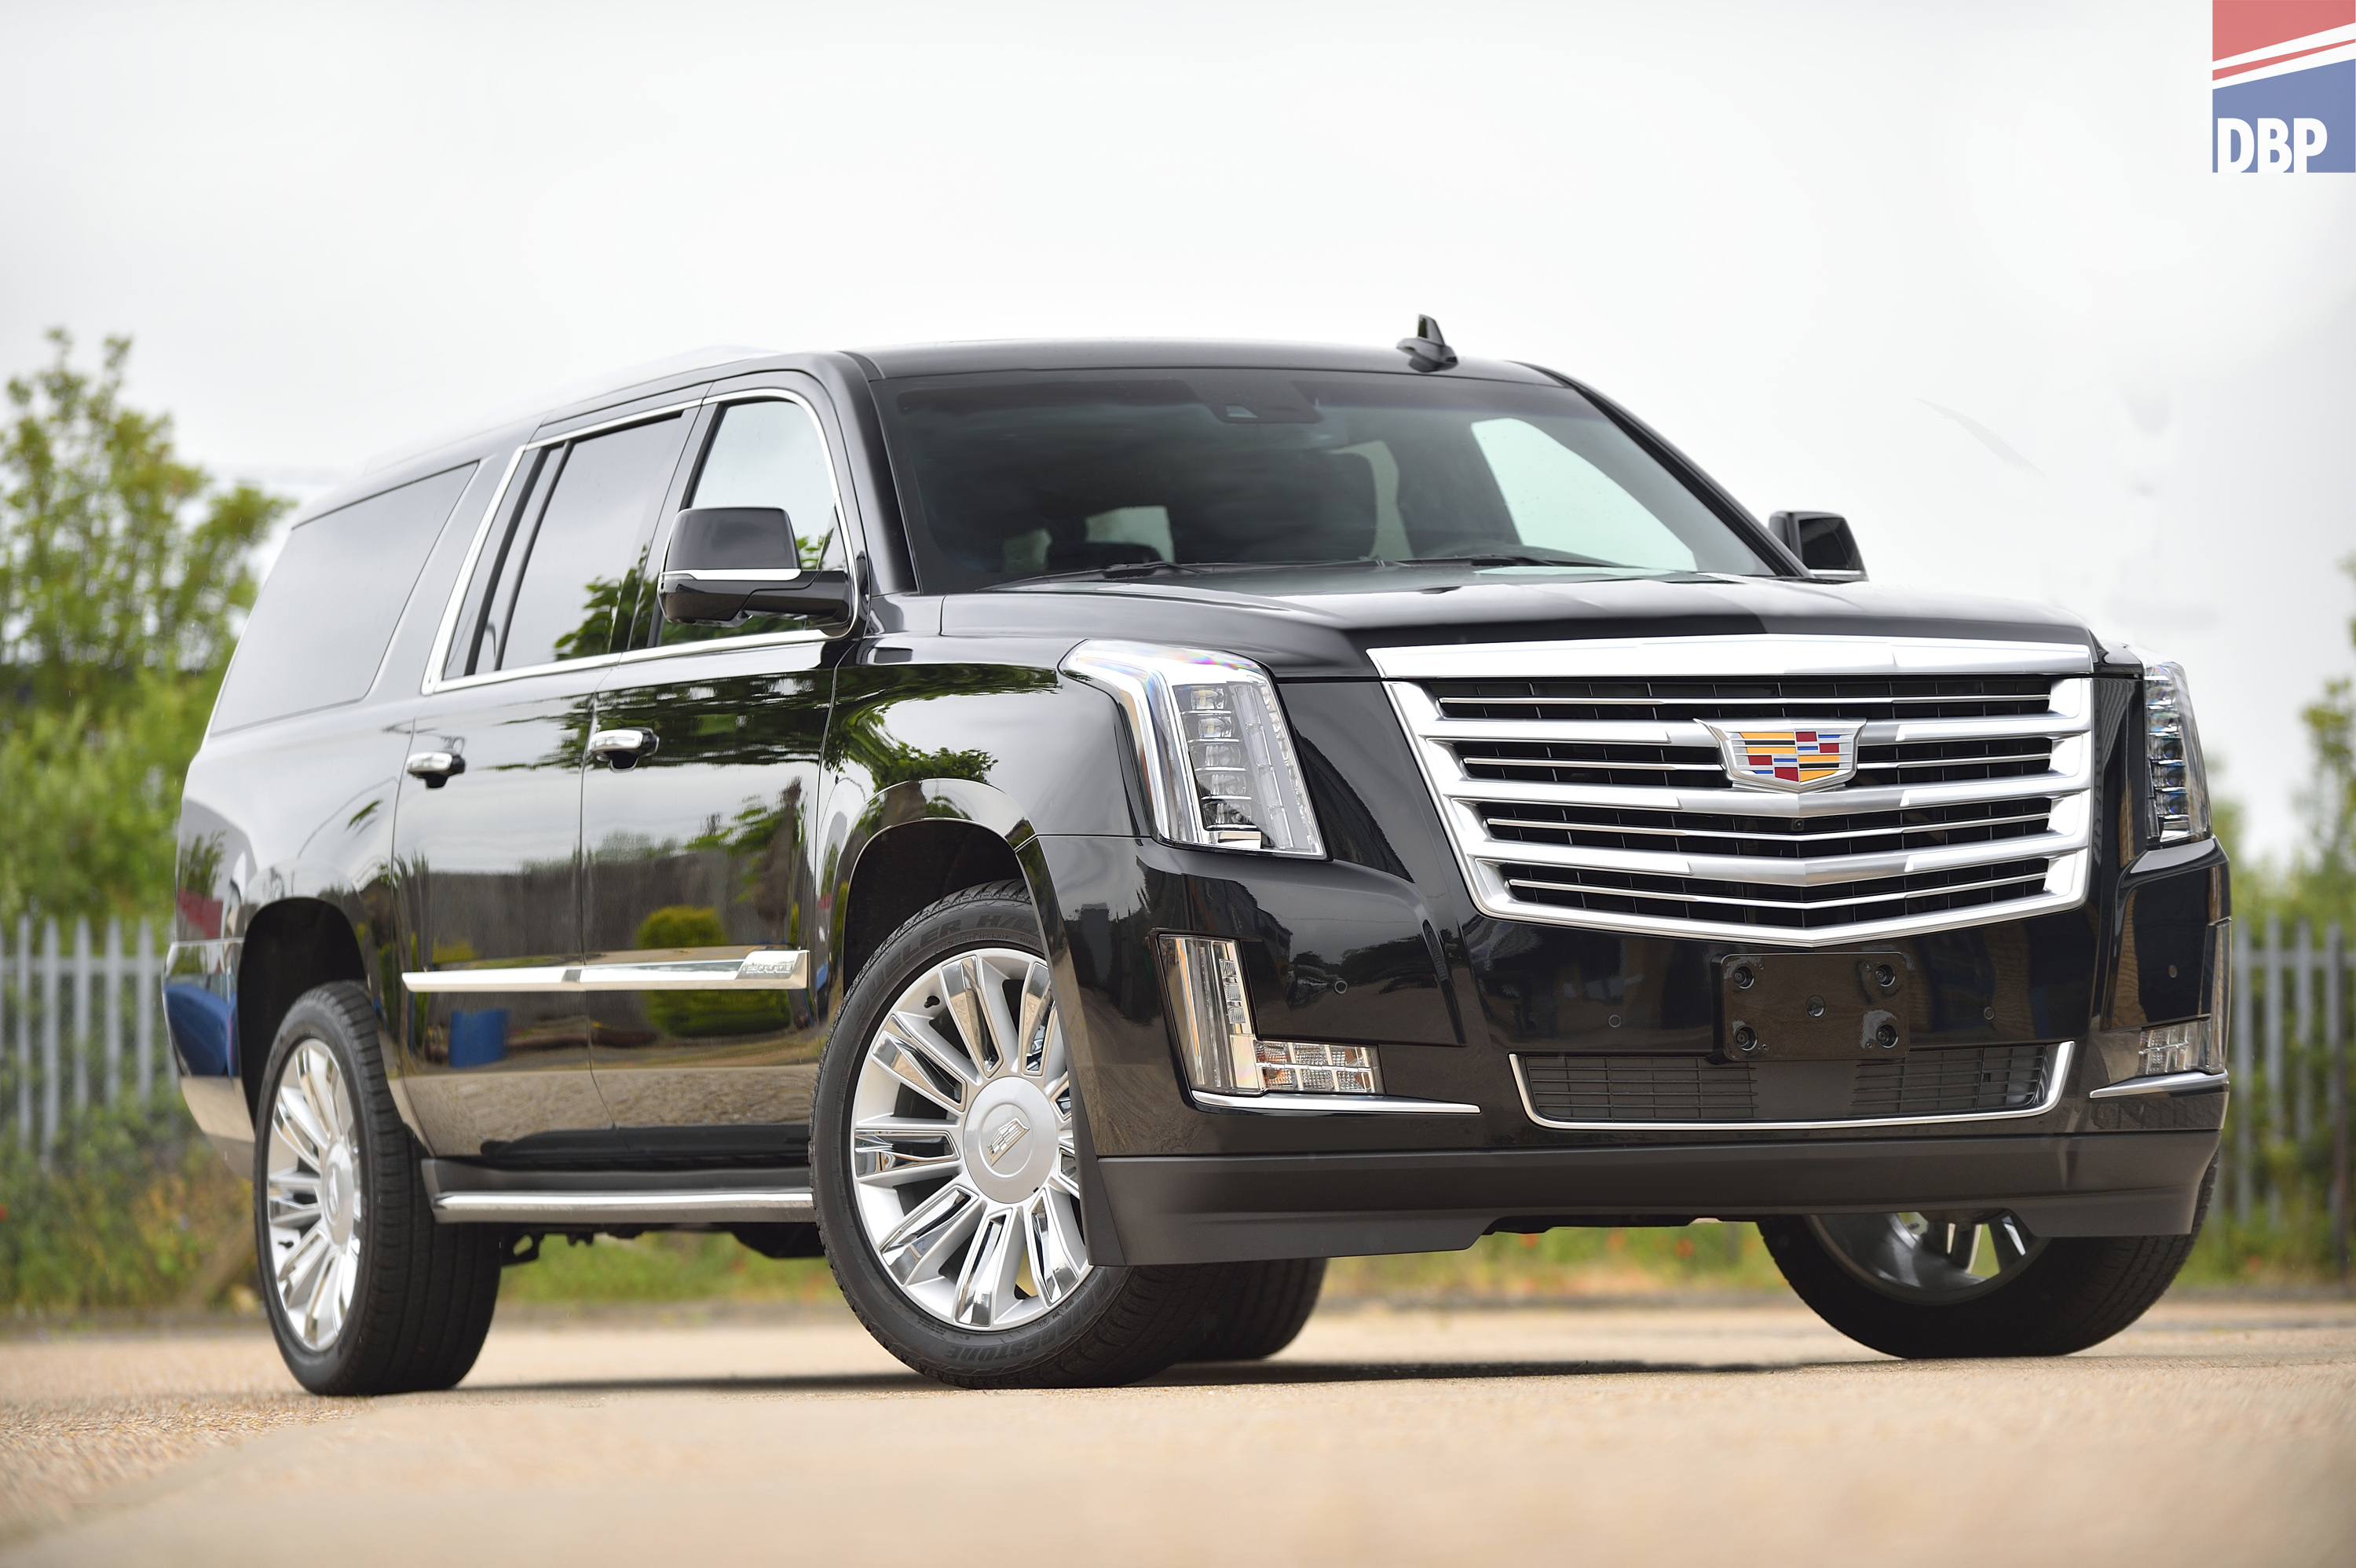 New Cadillac Escalade - David Boatwright Partnership